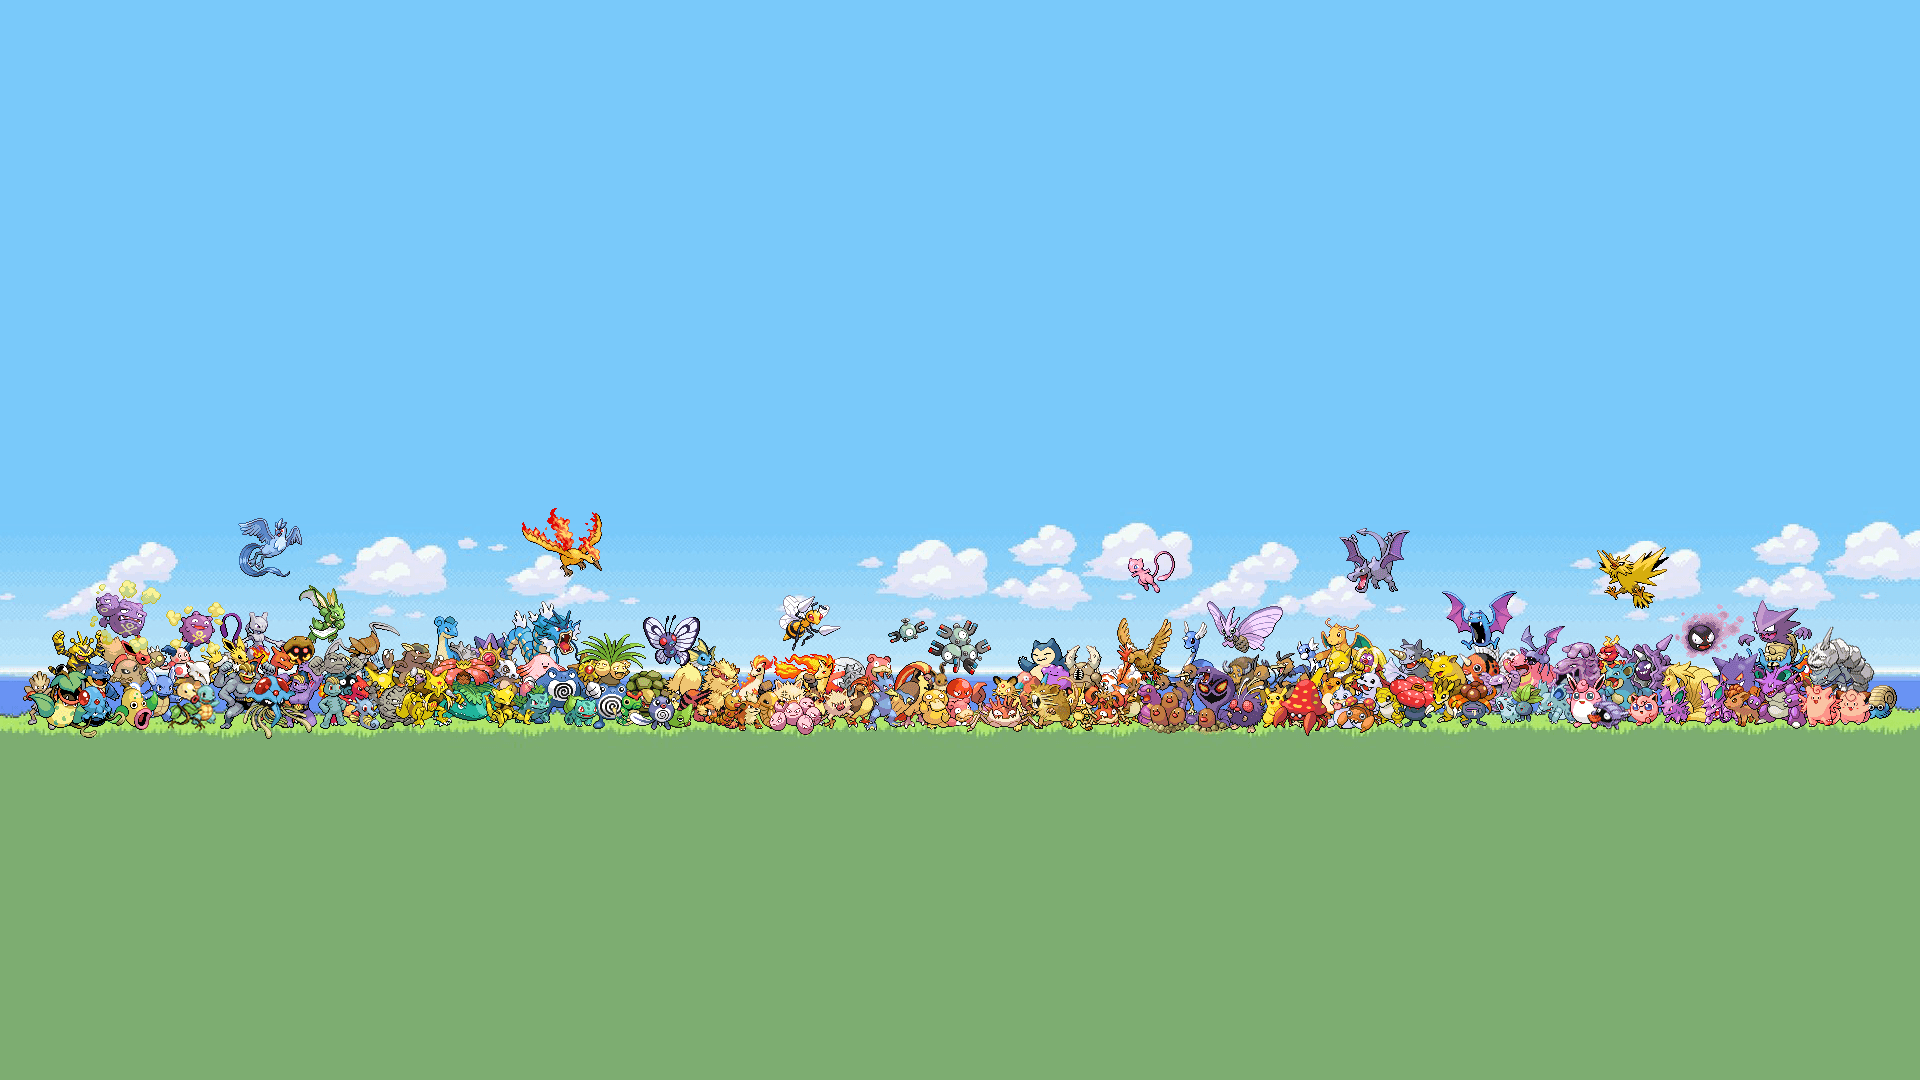 Original Pokemon Wallpapers 1920x1080